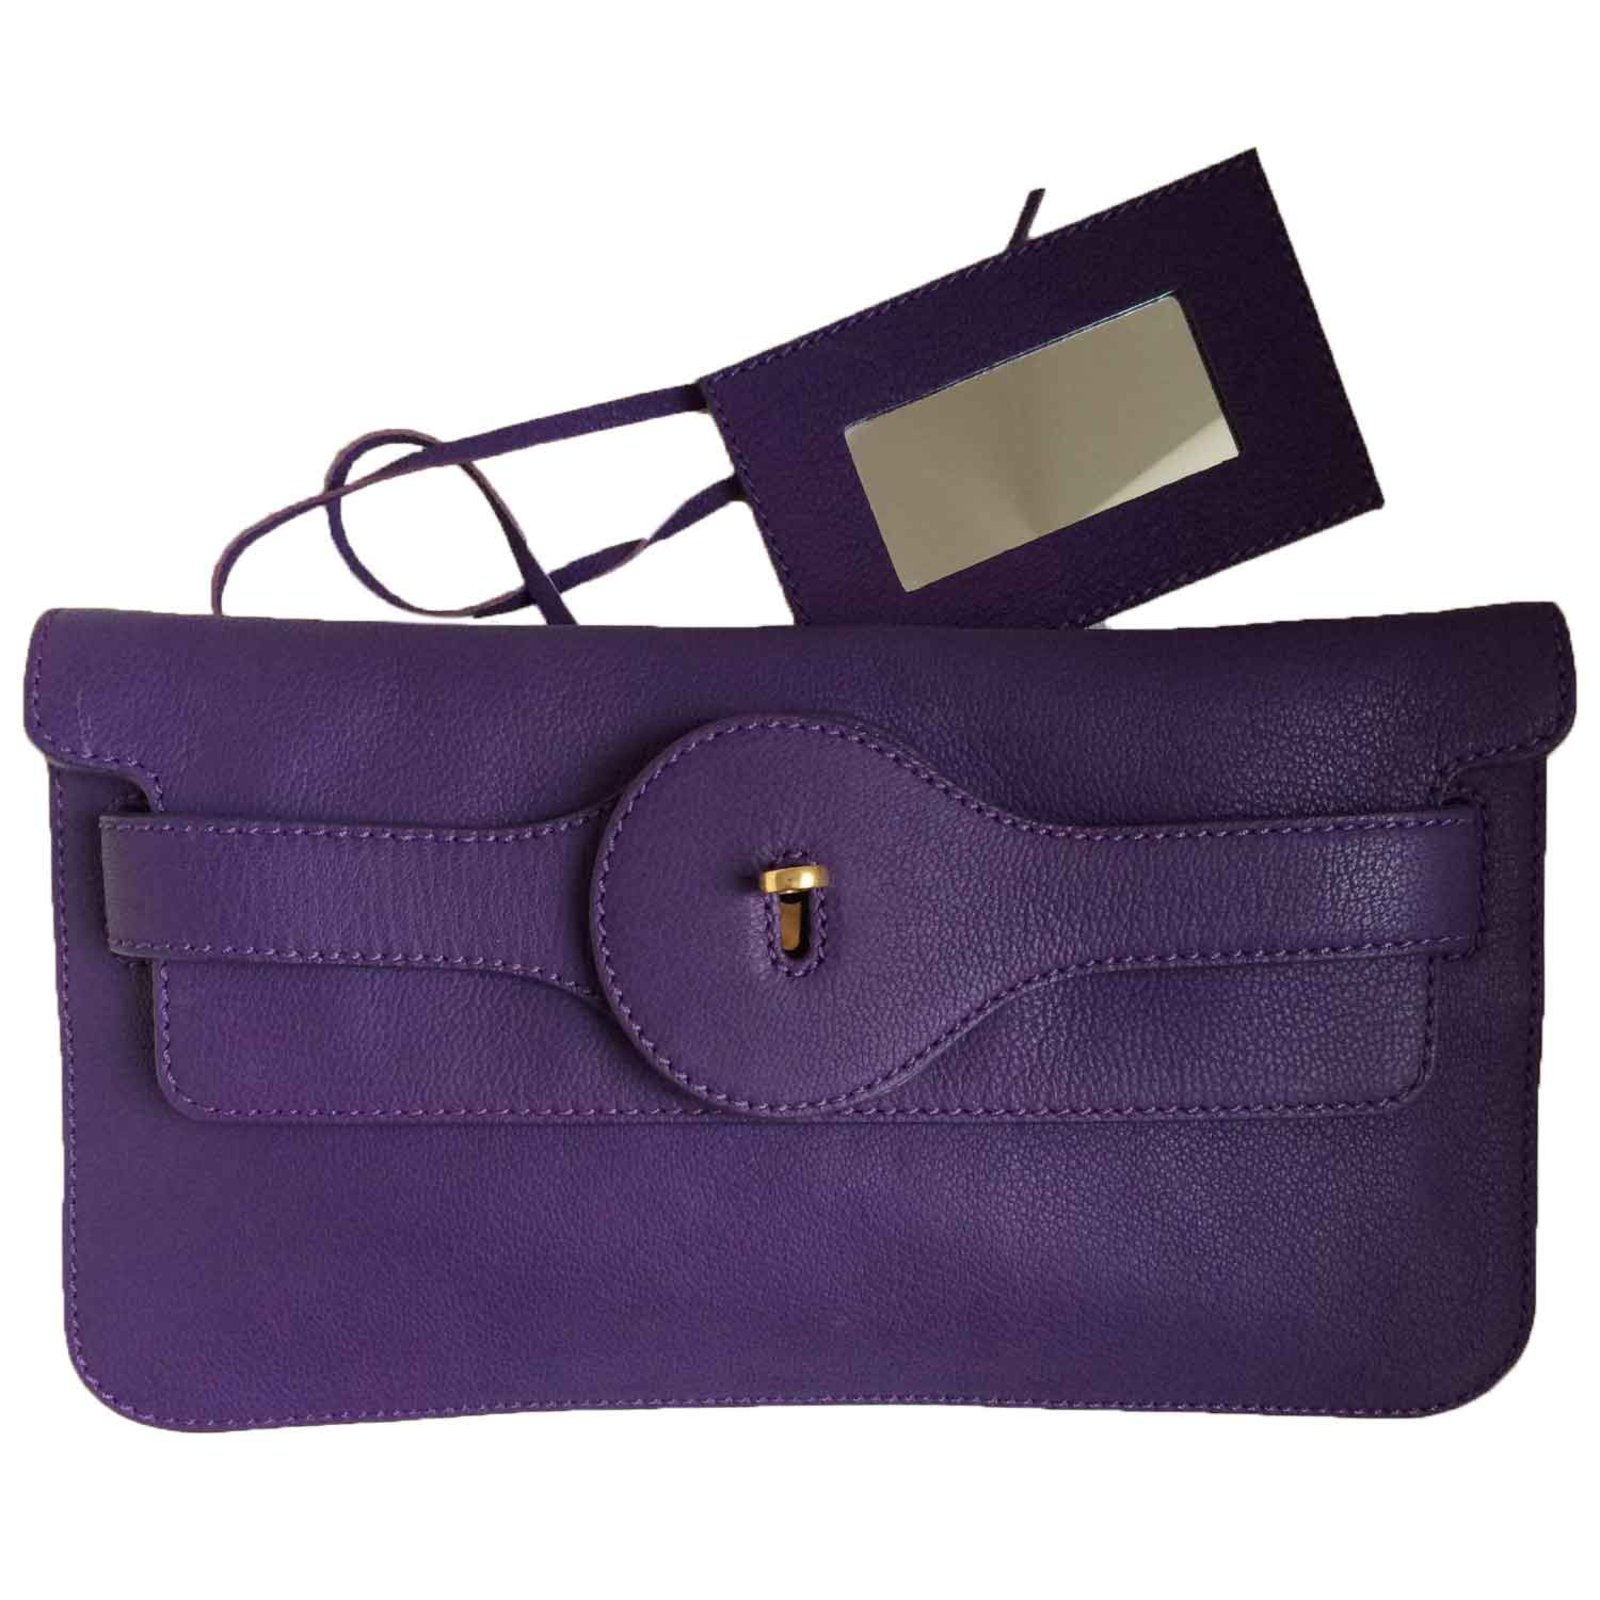 pochettes balenciaga pochette en cuir violet cuir violet. Black Bedroom Furniture Sets. Home Design Ideas